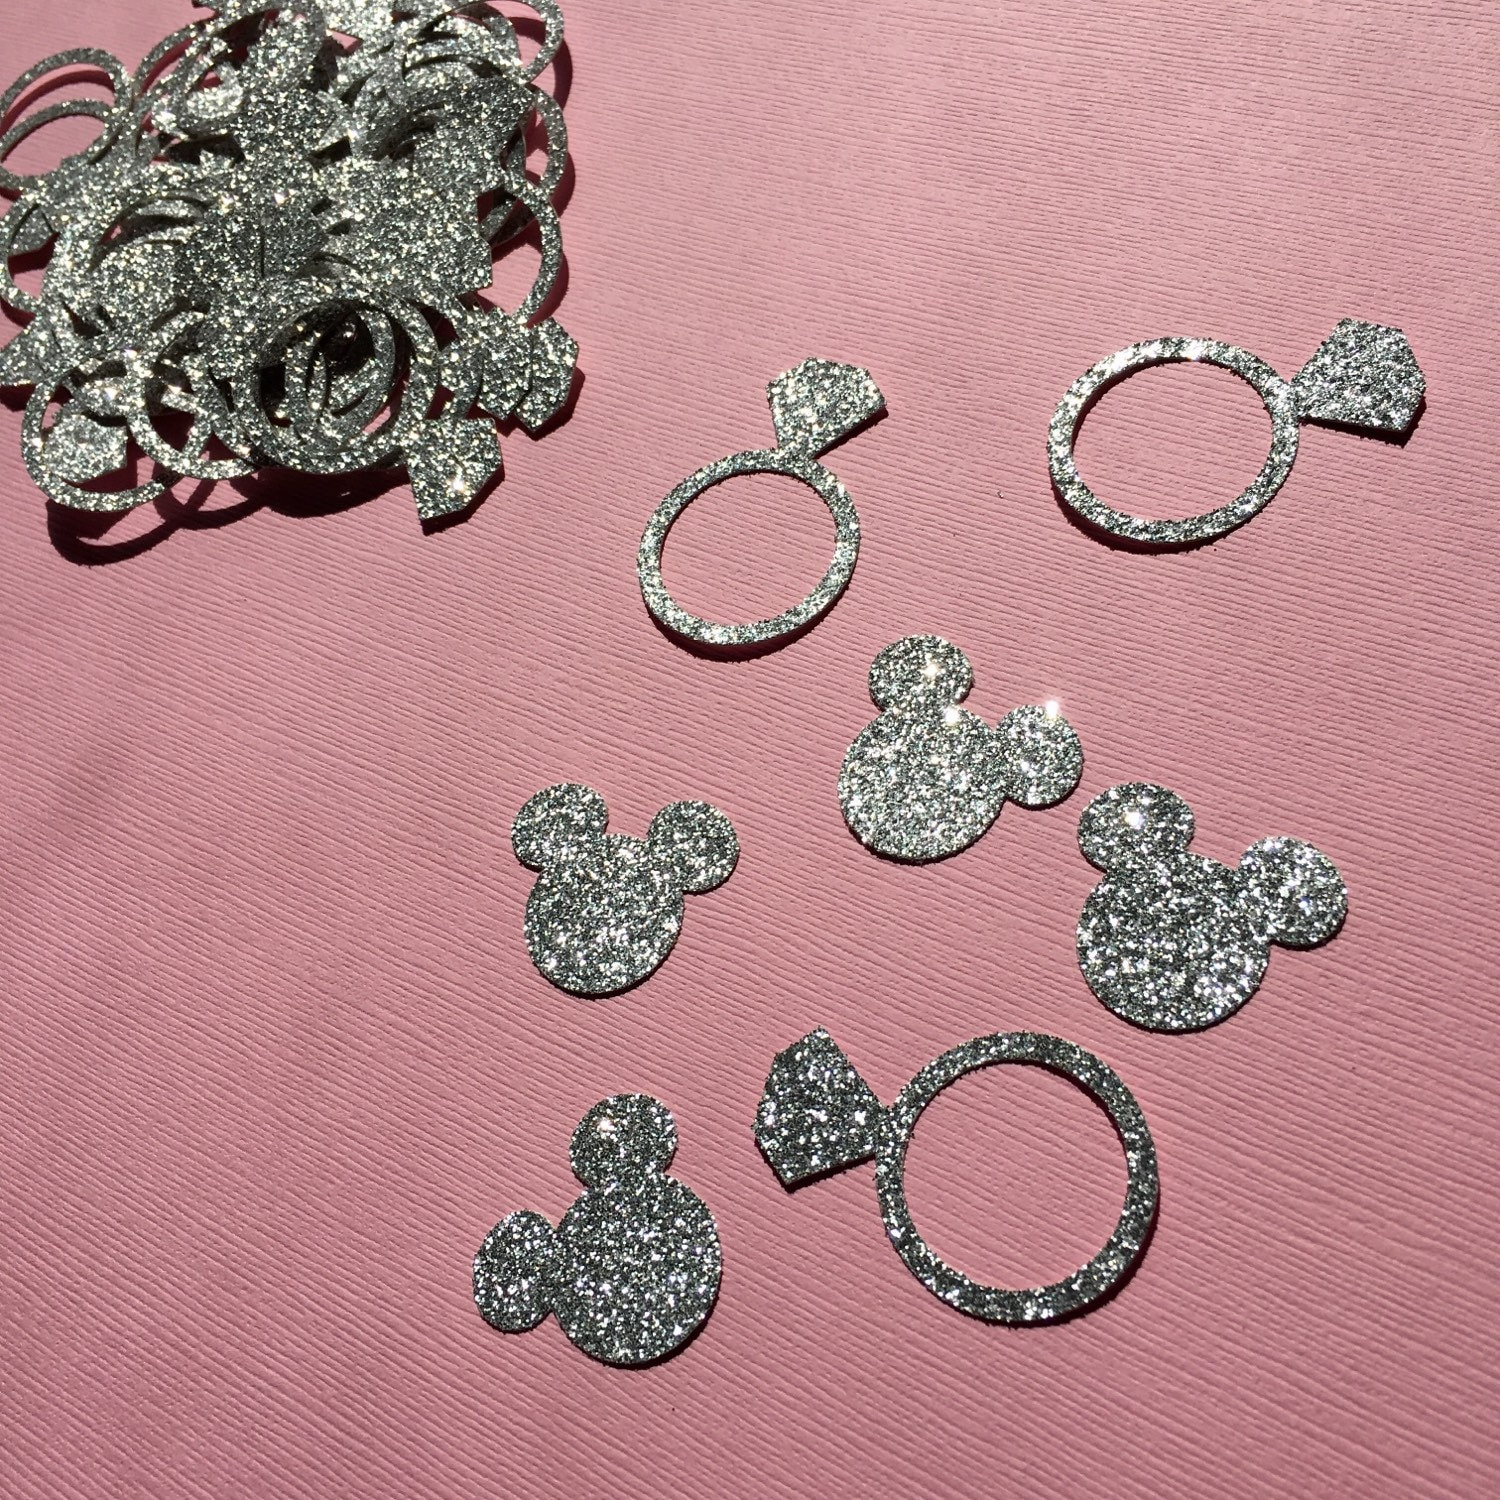 Minnie Mouse Inspired Wedding Confetti Diamond Rings Minnie